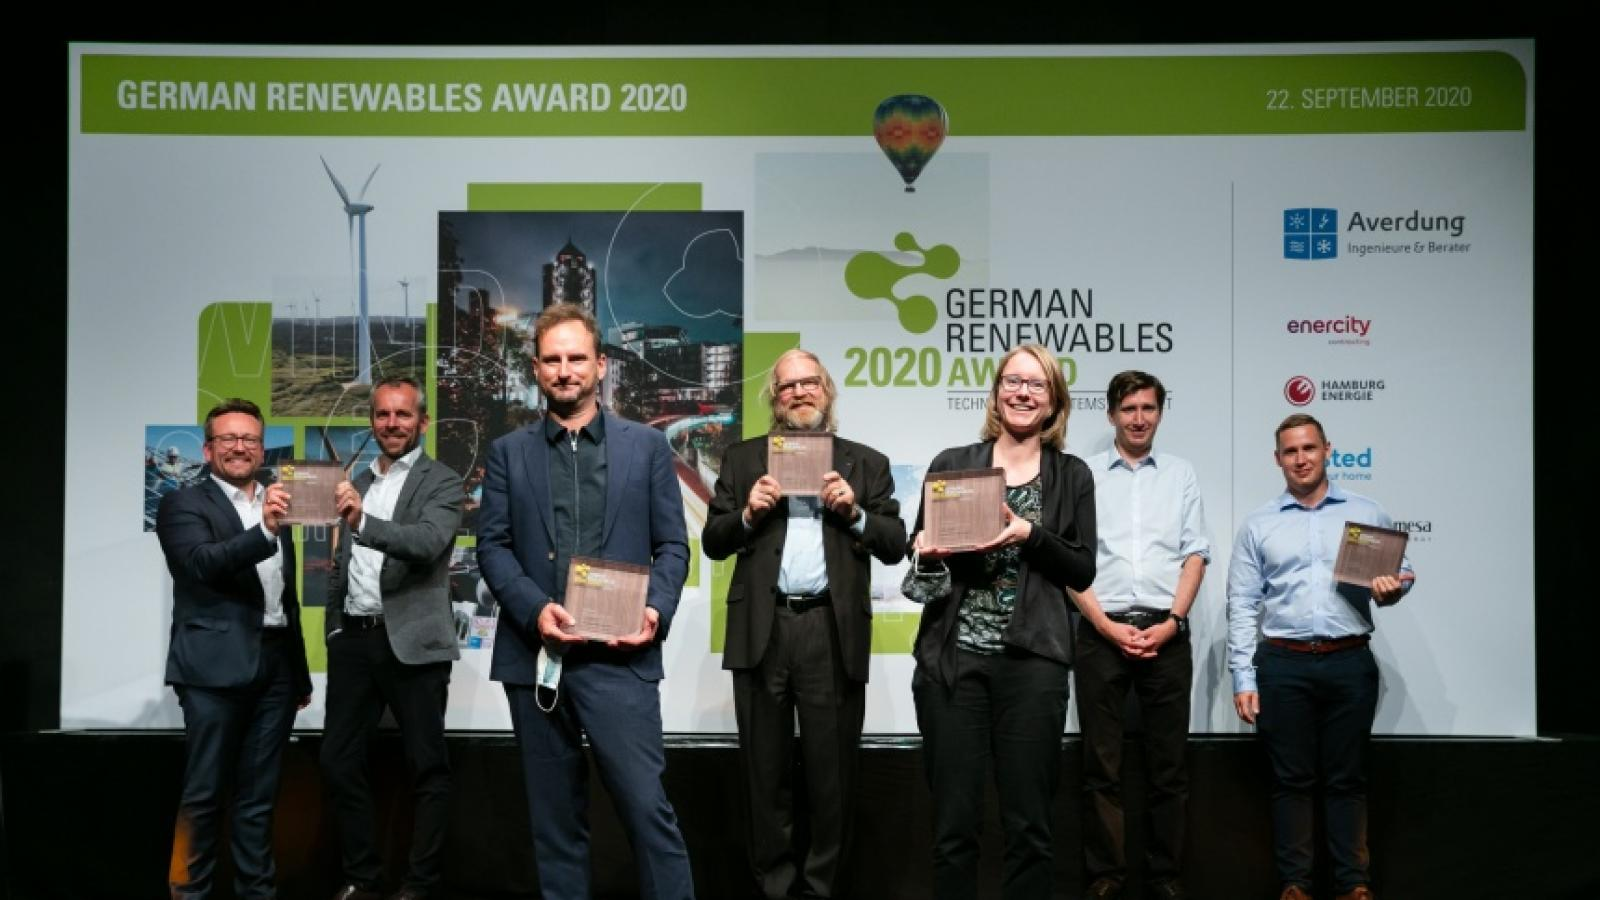 Winners of German Renewables Award